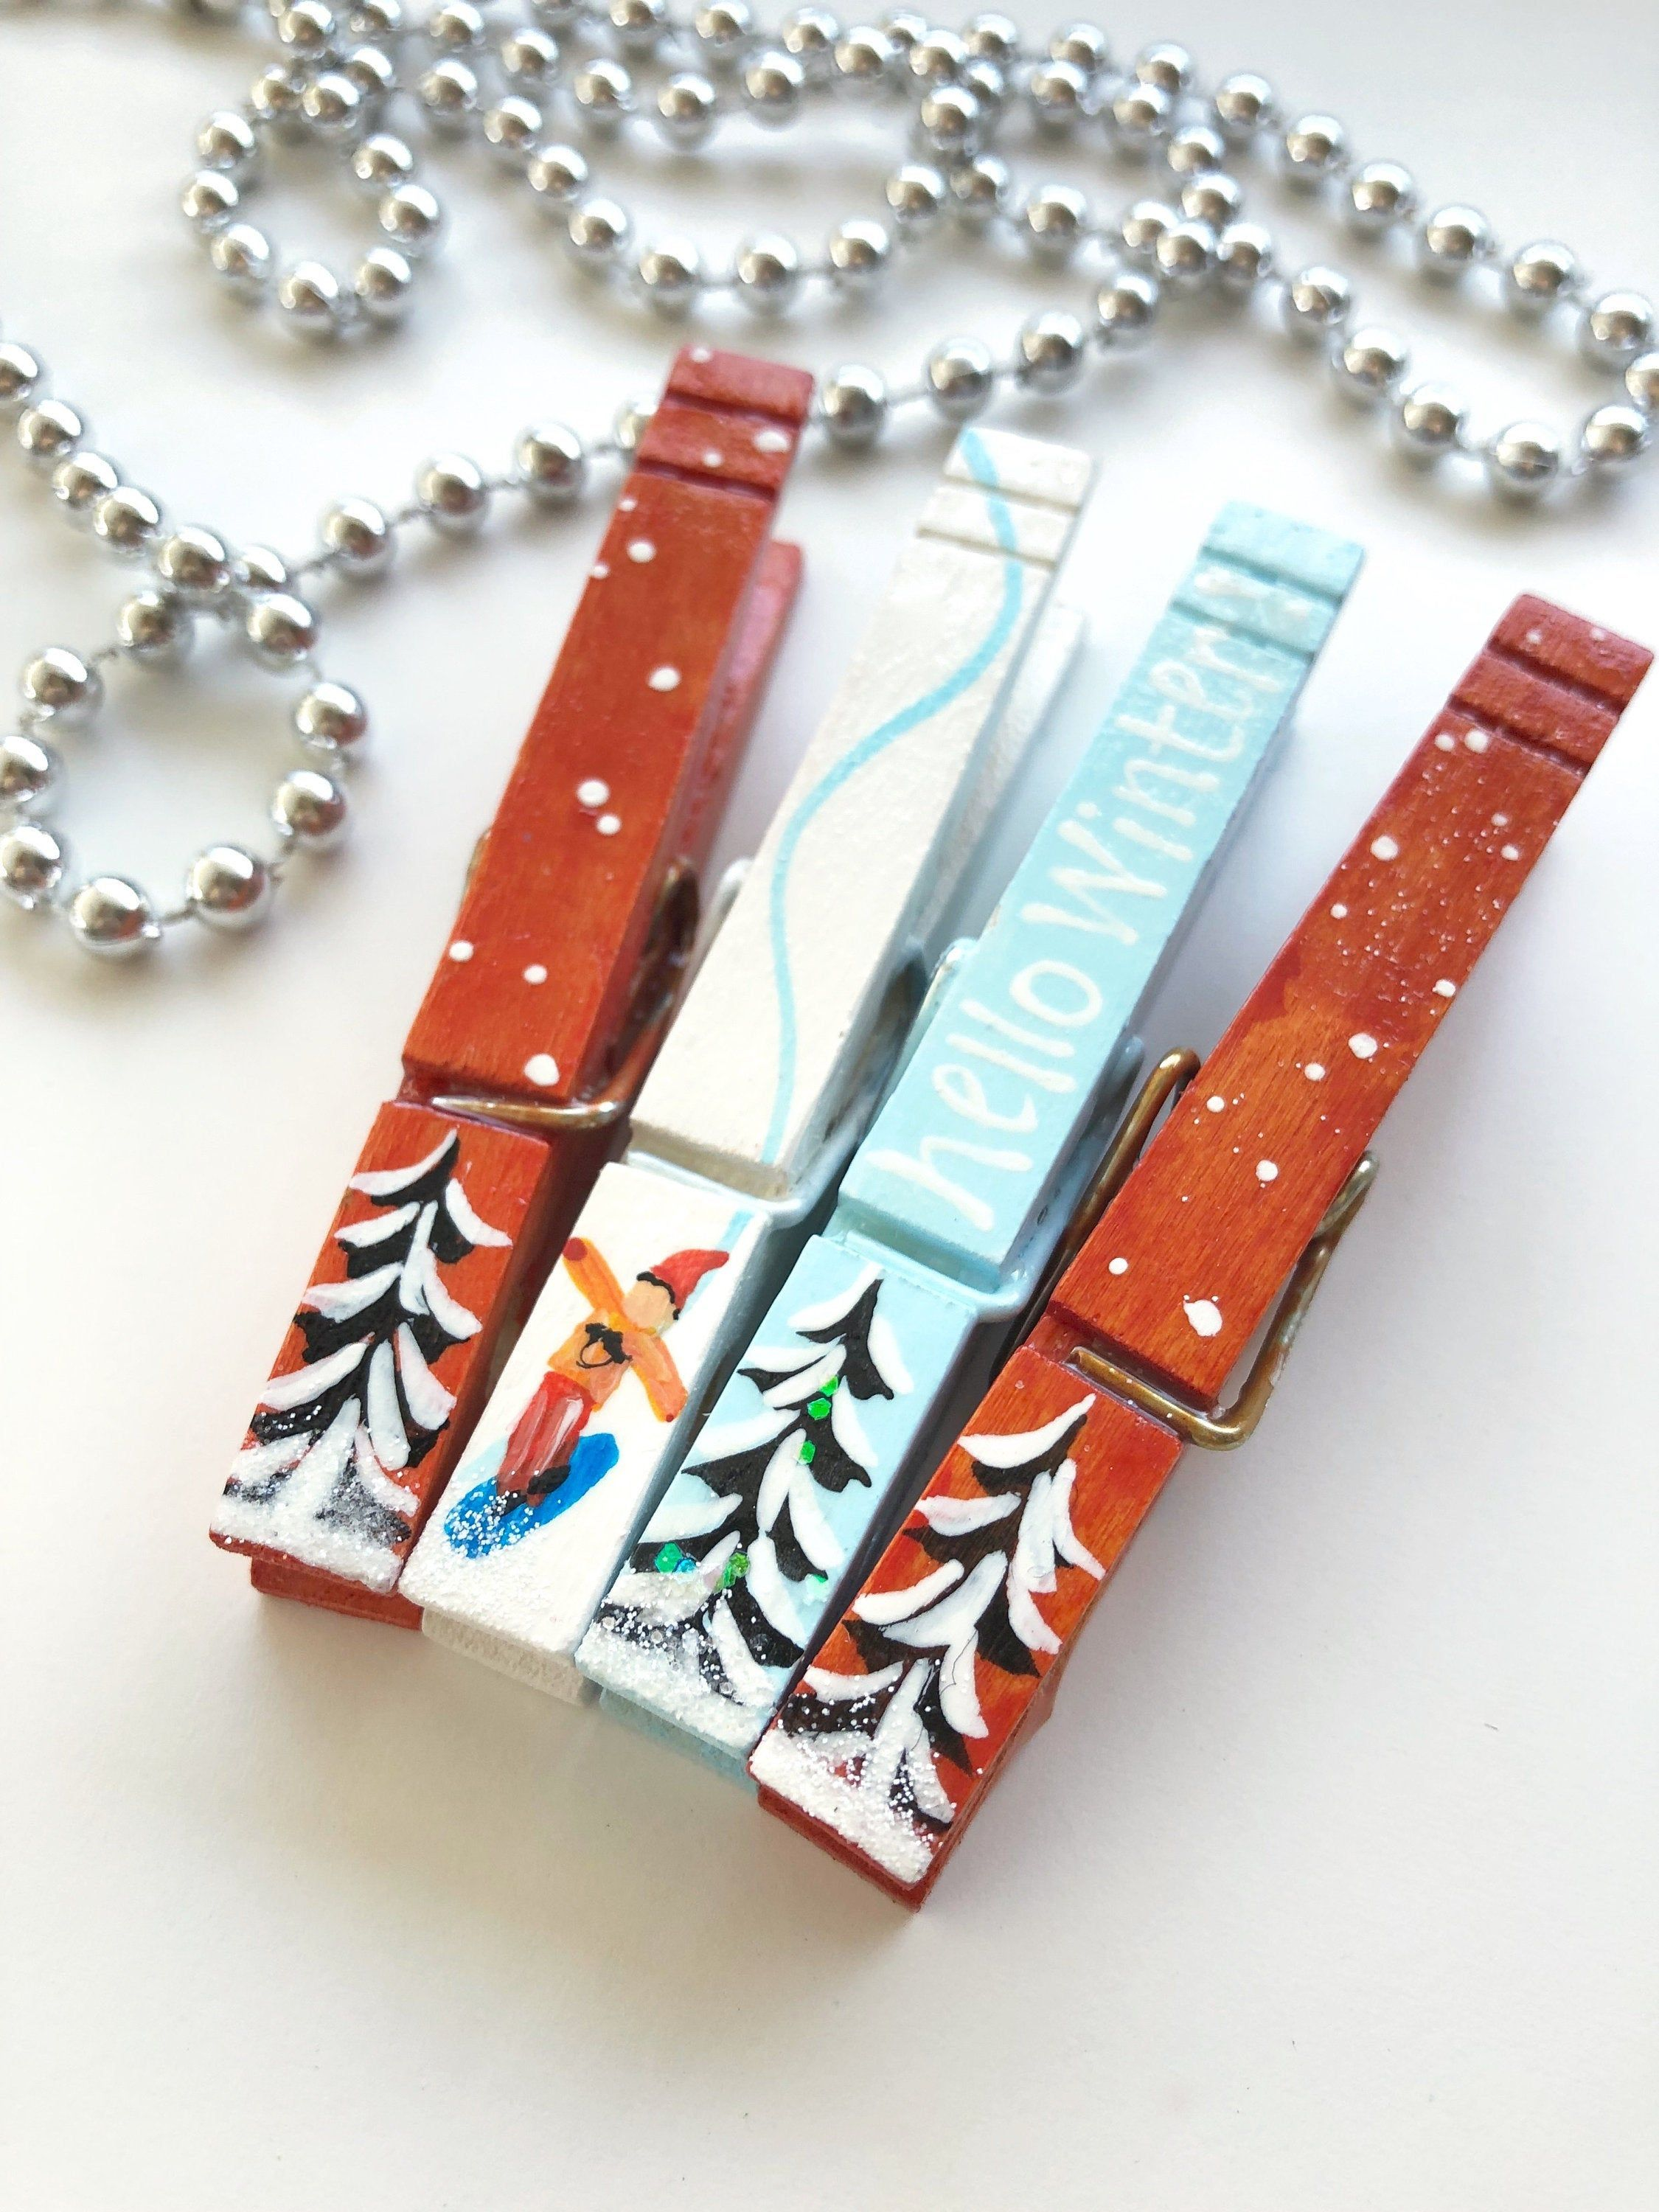 WINTER SNOWBOARD Clothespins Nordic Christmas trees snowboarder stocking stuffer Hello winter clothes pins painted clothespin card holder